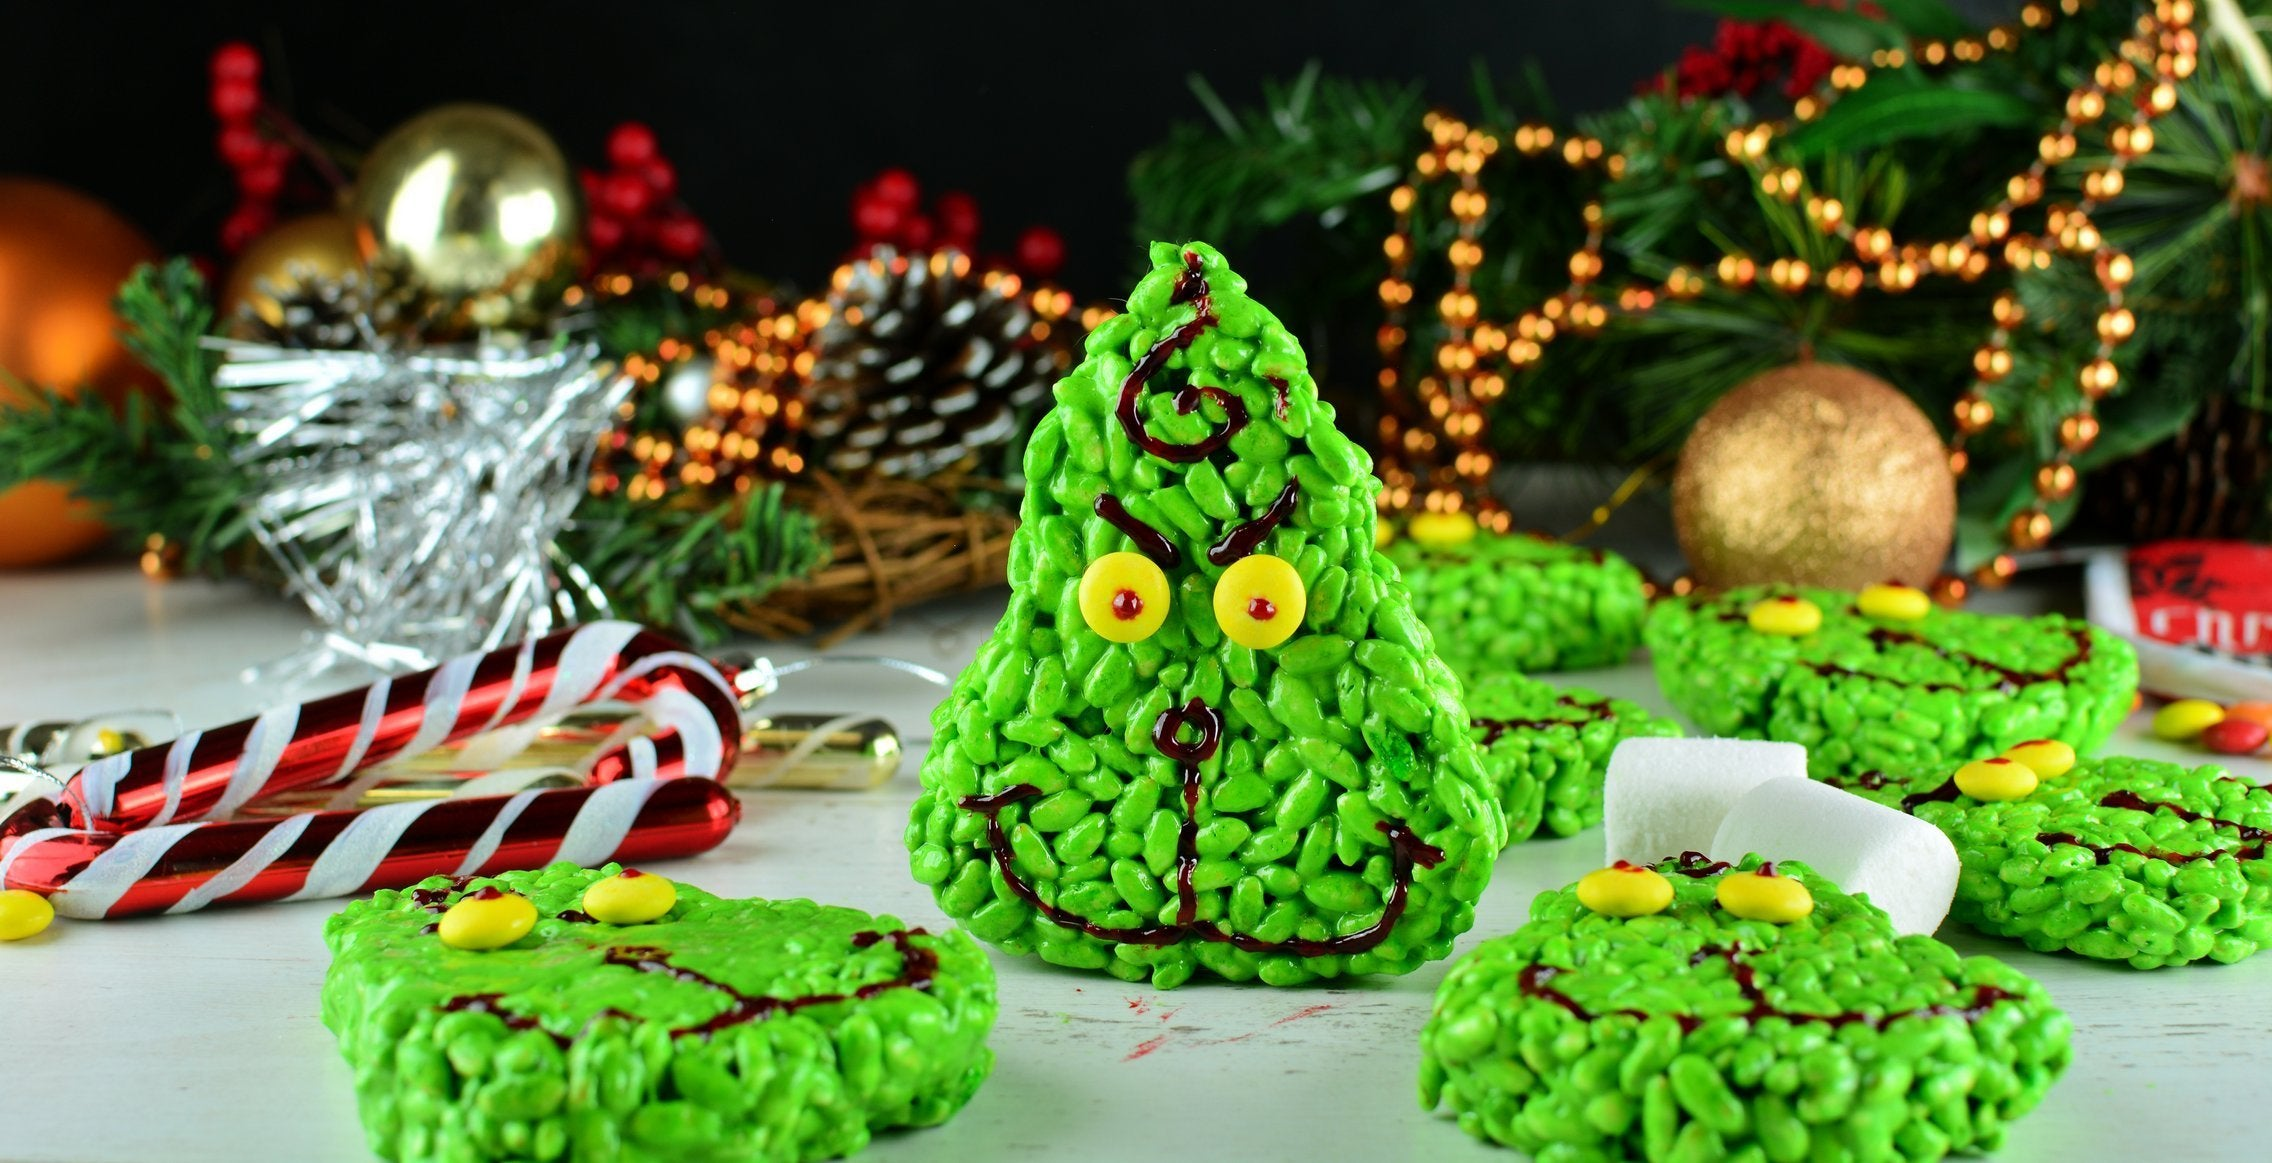 Marshmallow Matcha Grinch Cookies with M&M's